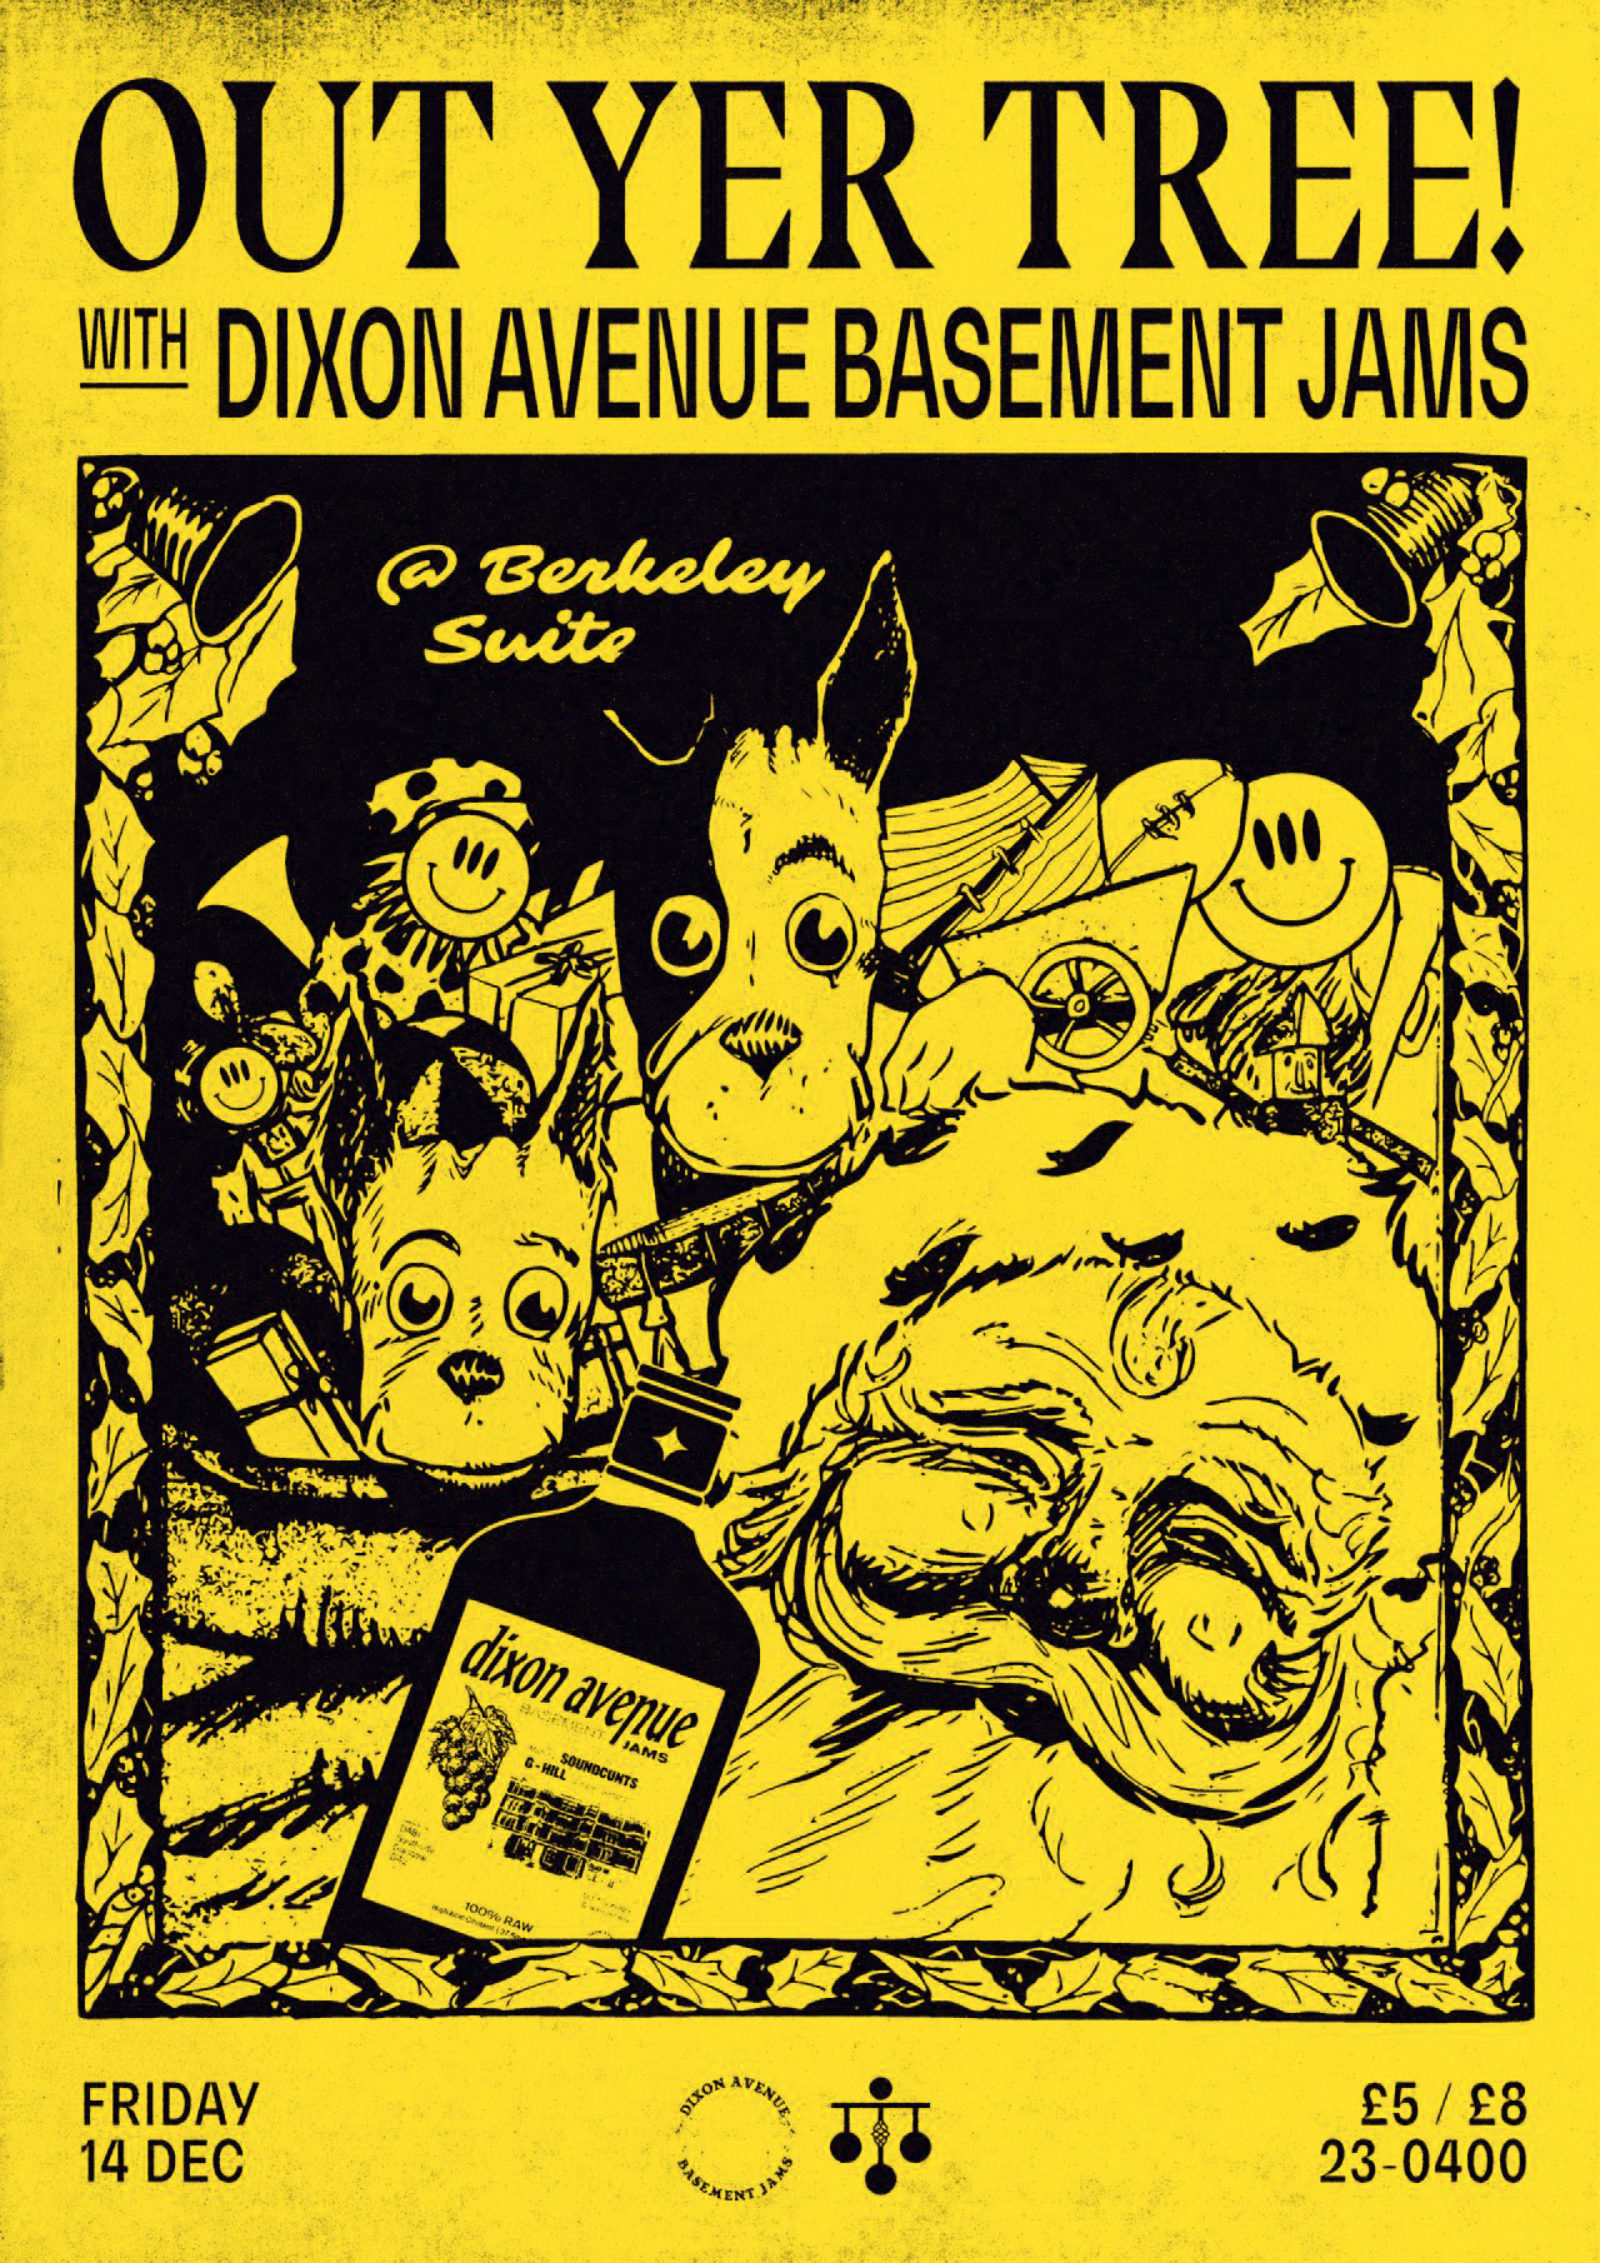 Dixon Avenue Basement Jams - OUT YER TREE!